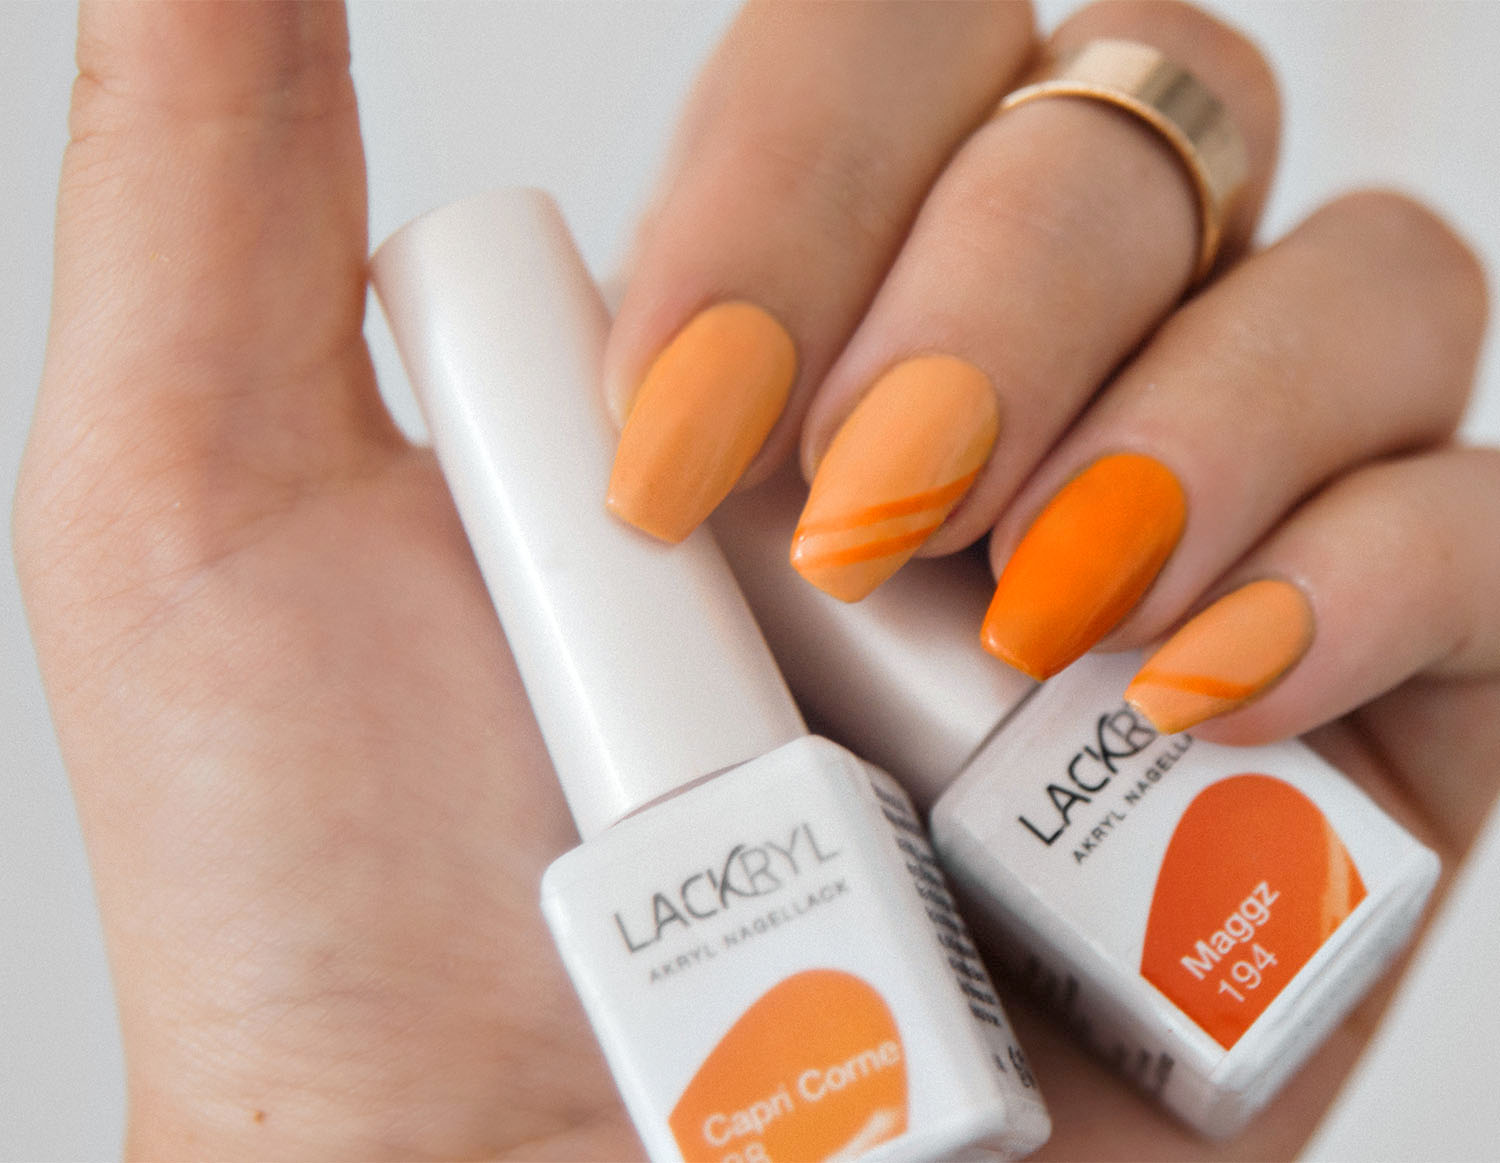 Lackryl Capri Corne & Maggz - Orange Nail Design